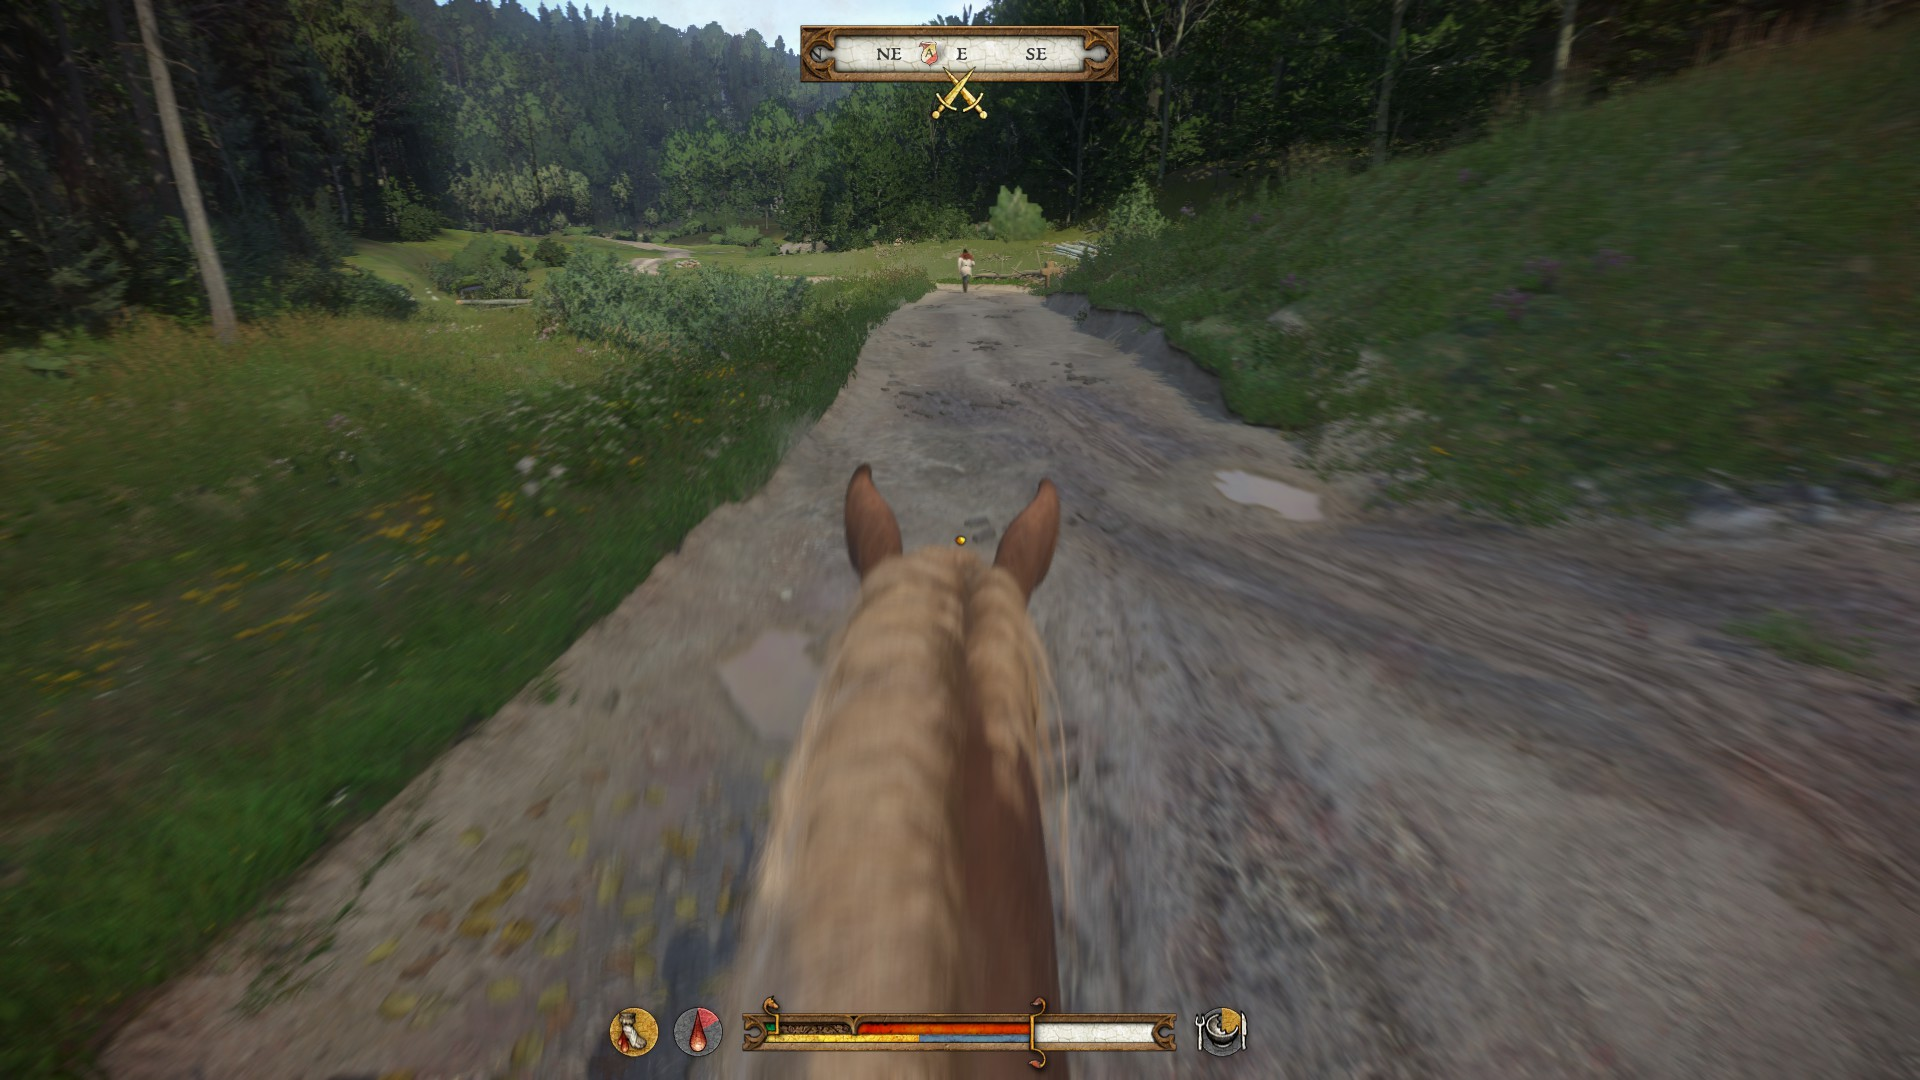 Kingdom Come: Deliverance is one of many games to feature horse riding for transport, but without any attempt at realistic input.